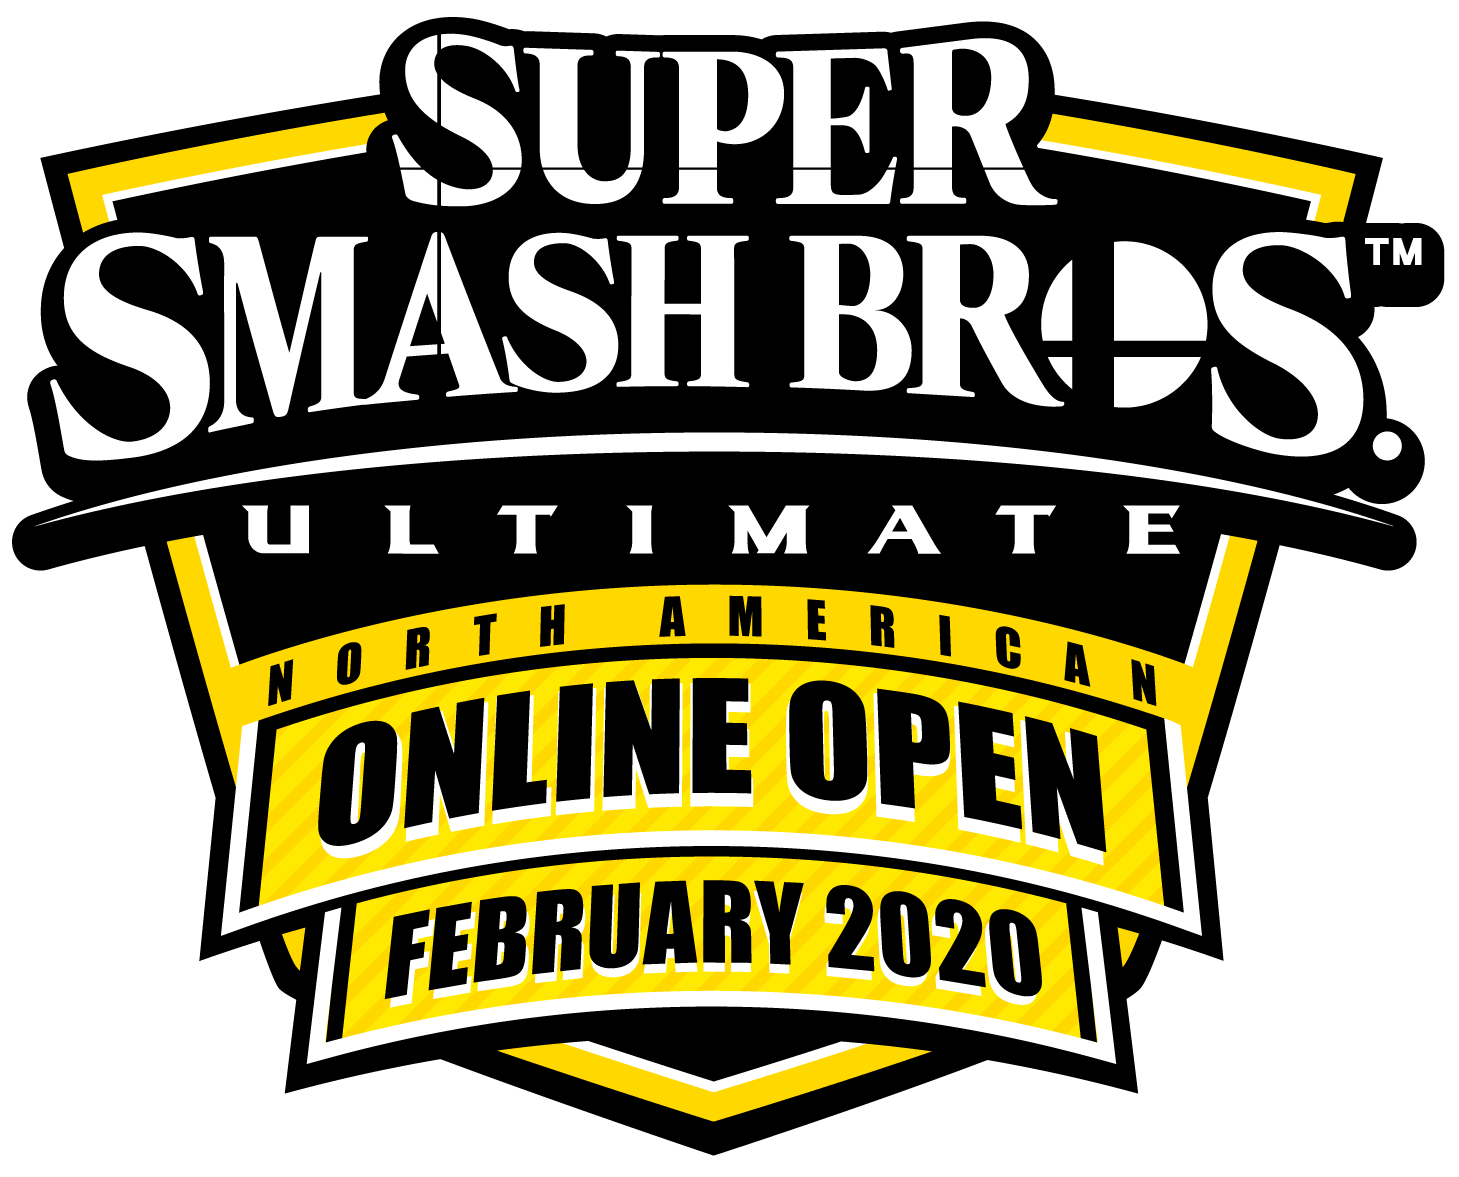 Super Smash Bros Ultimate North American Online Open February 2020 A quick guide on how to use anther's ladder for super smash bros. super smash bros ultimate north